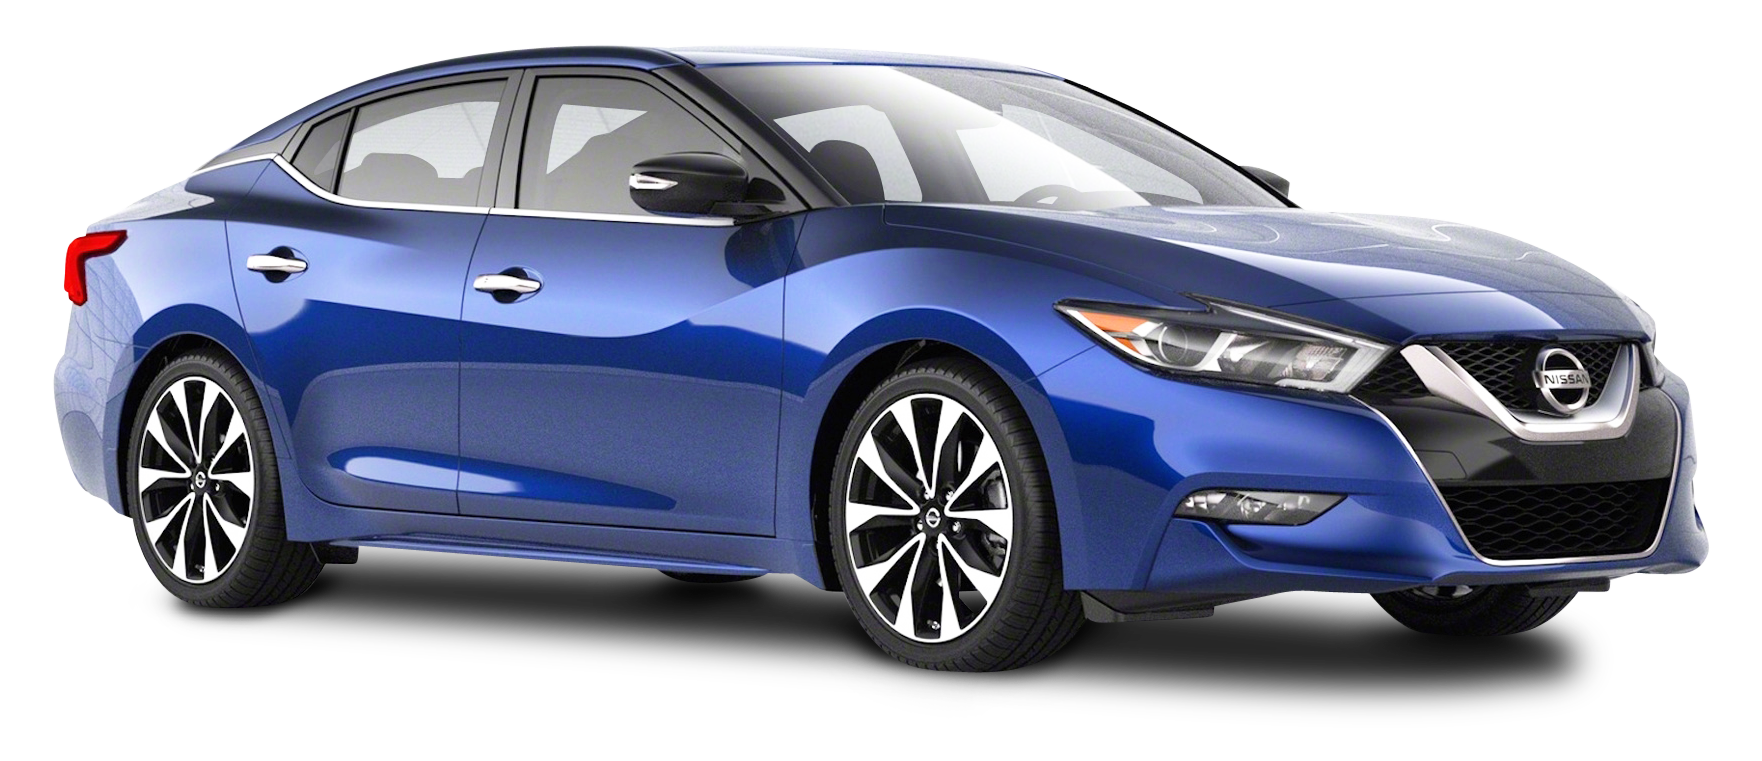 Blue Nissan Maxima Car PNG Image - Nissan PNG